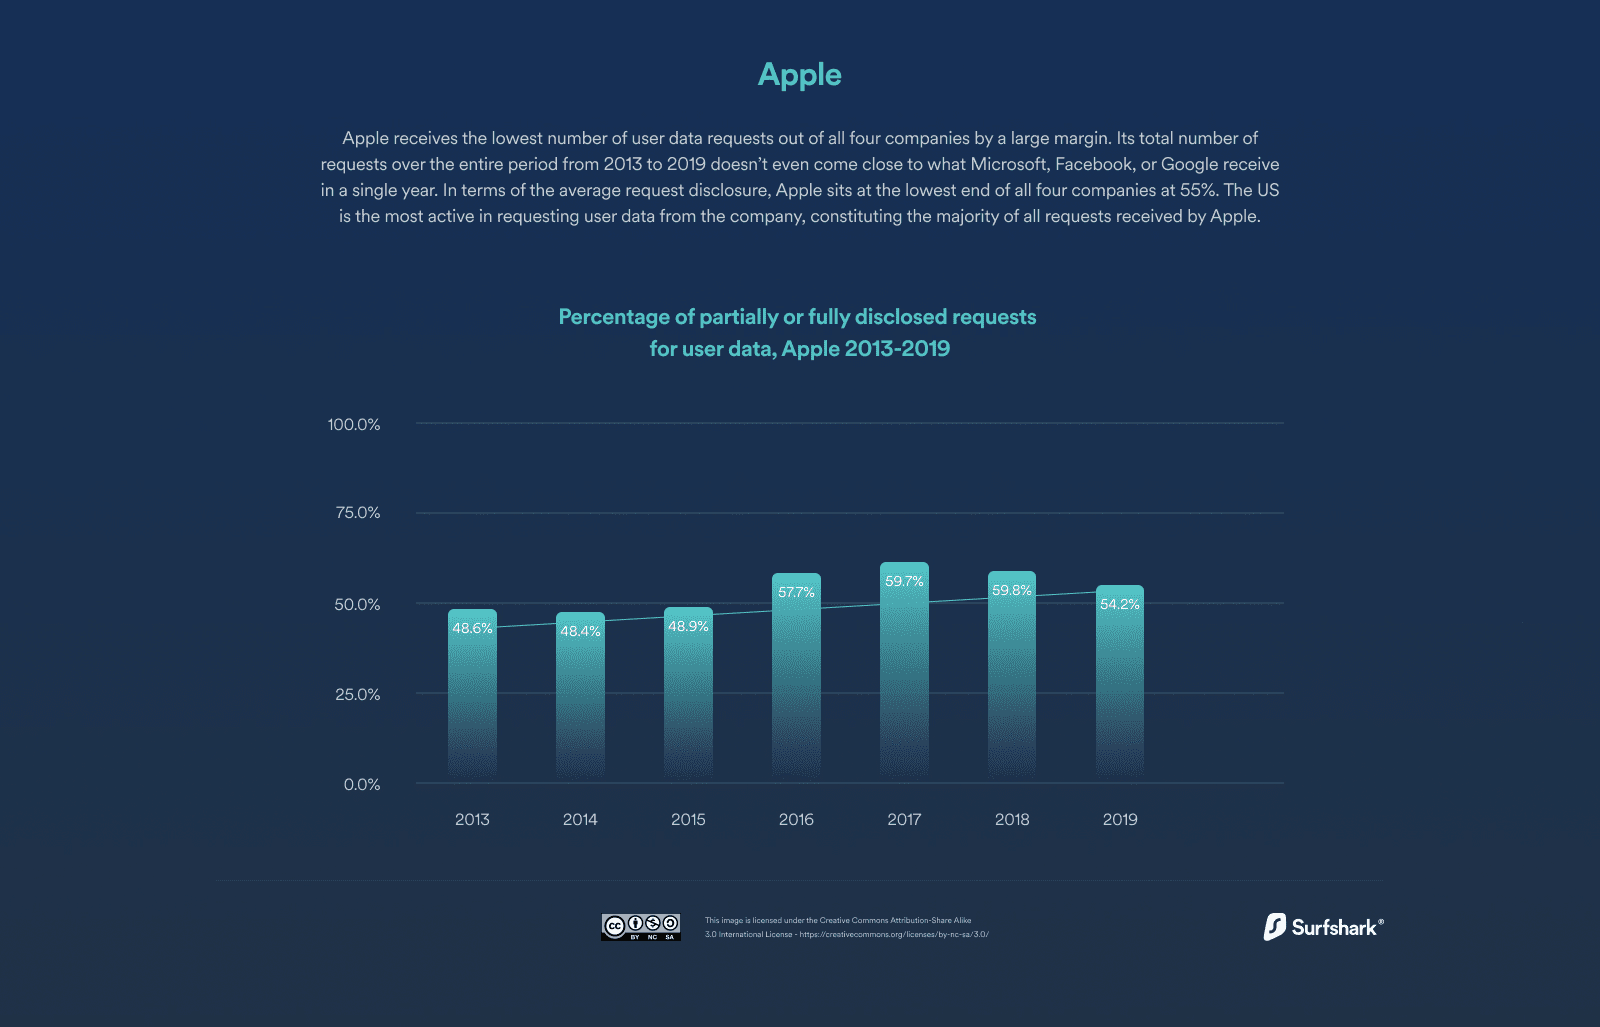 Percentage of partially or fully disclosed requests for user data, Apple 2013-2019